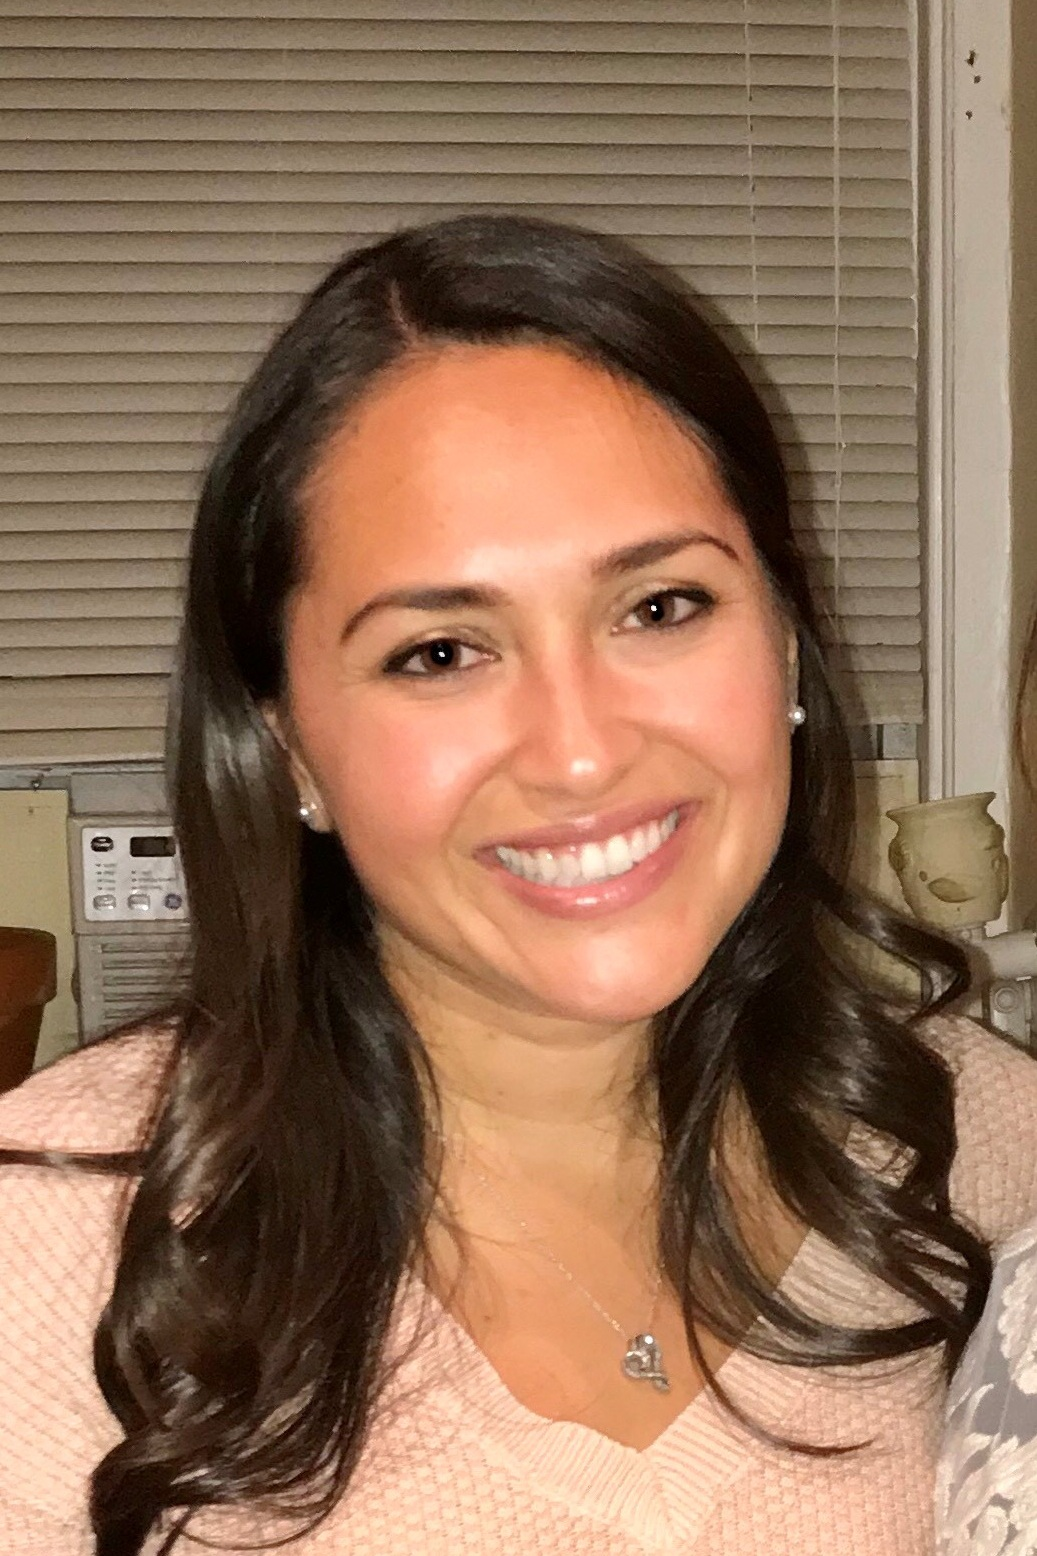 Samantha Cisneros, PA-C - Training Institution: Drexel UniversityYear Joined: 2018Special Interests: Snowboarding, Surfing, Traveling